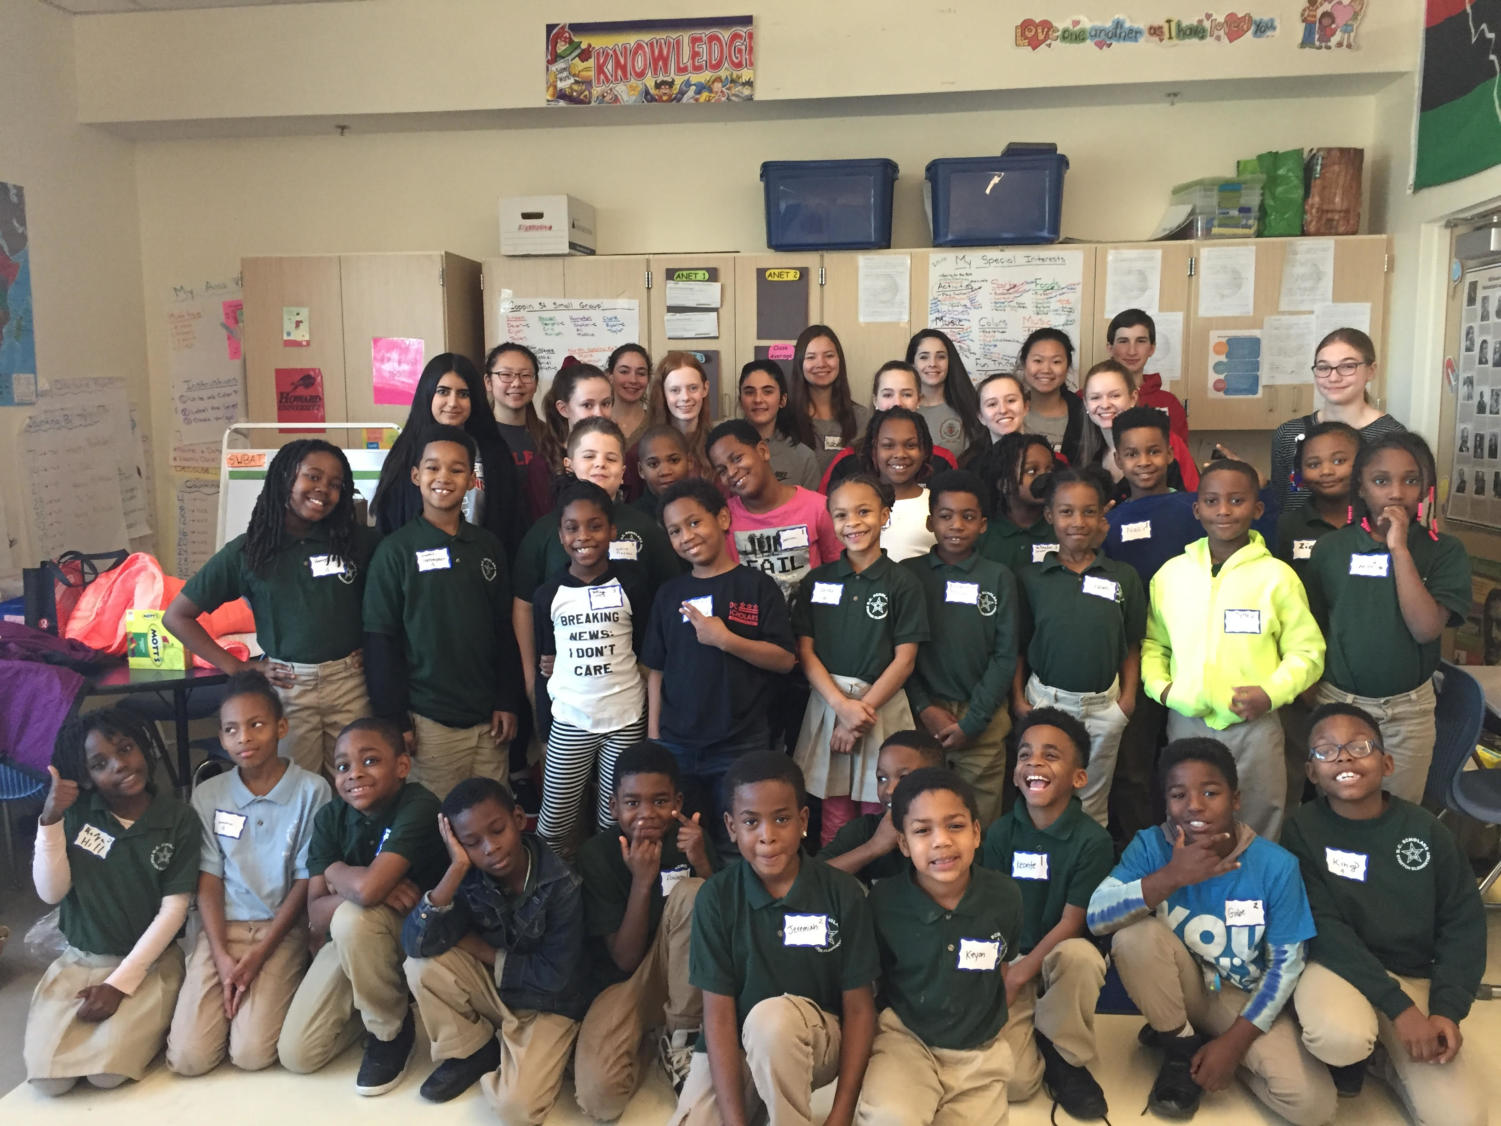 MHS dance team and accompanying volunteers pose for a group picture with the kids at Stanton Elementary School in D.C..